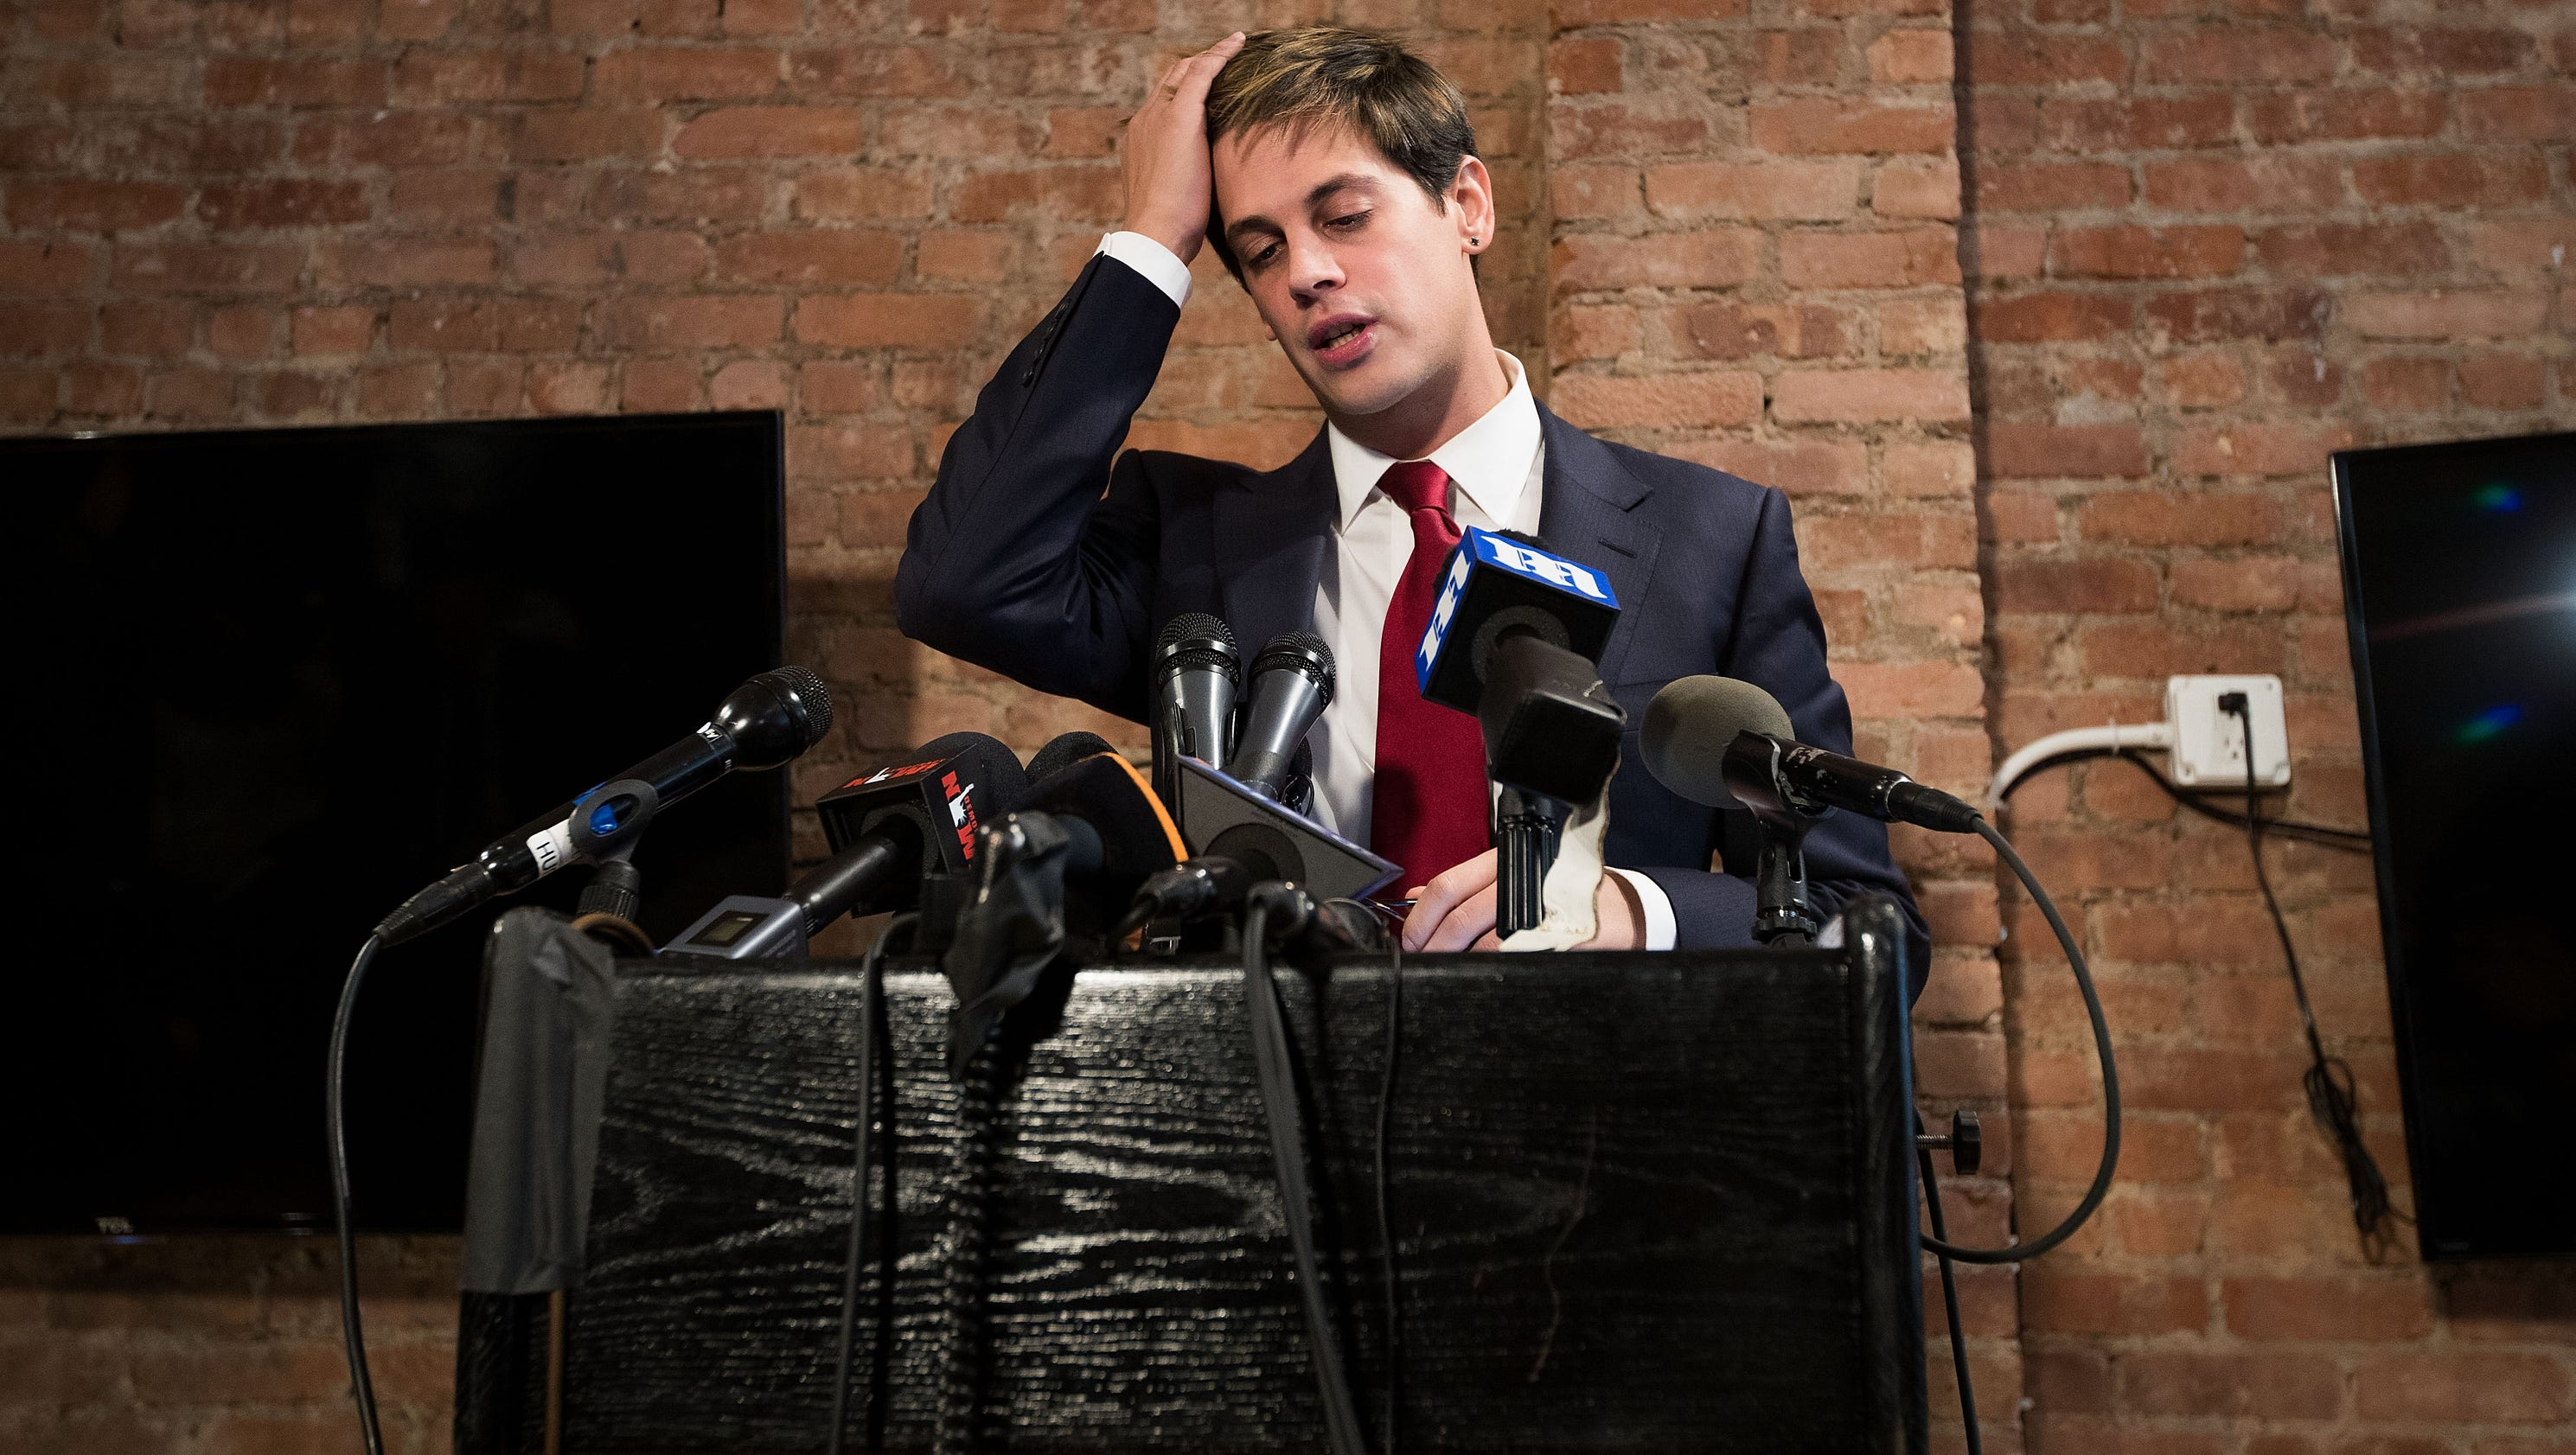 story life books which publisher pick up milo yiannopoulos dumped book anybody